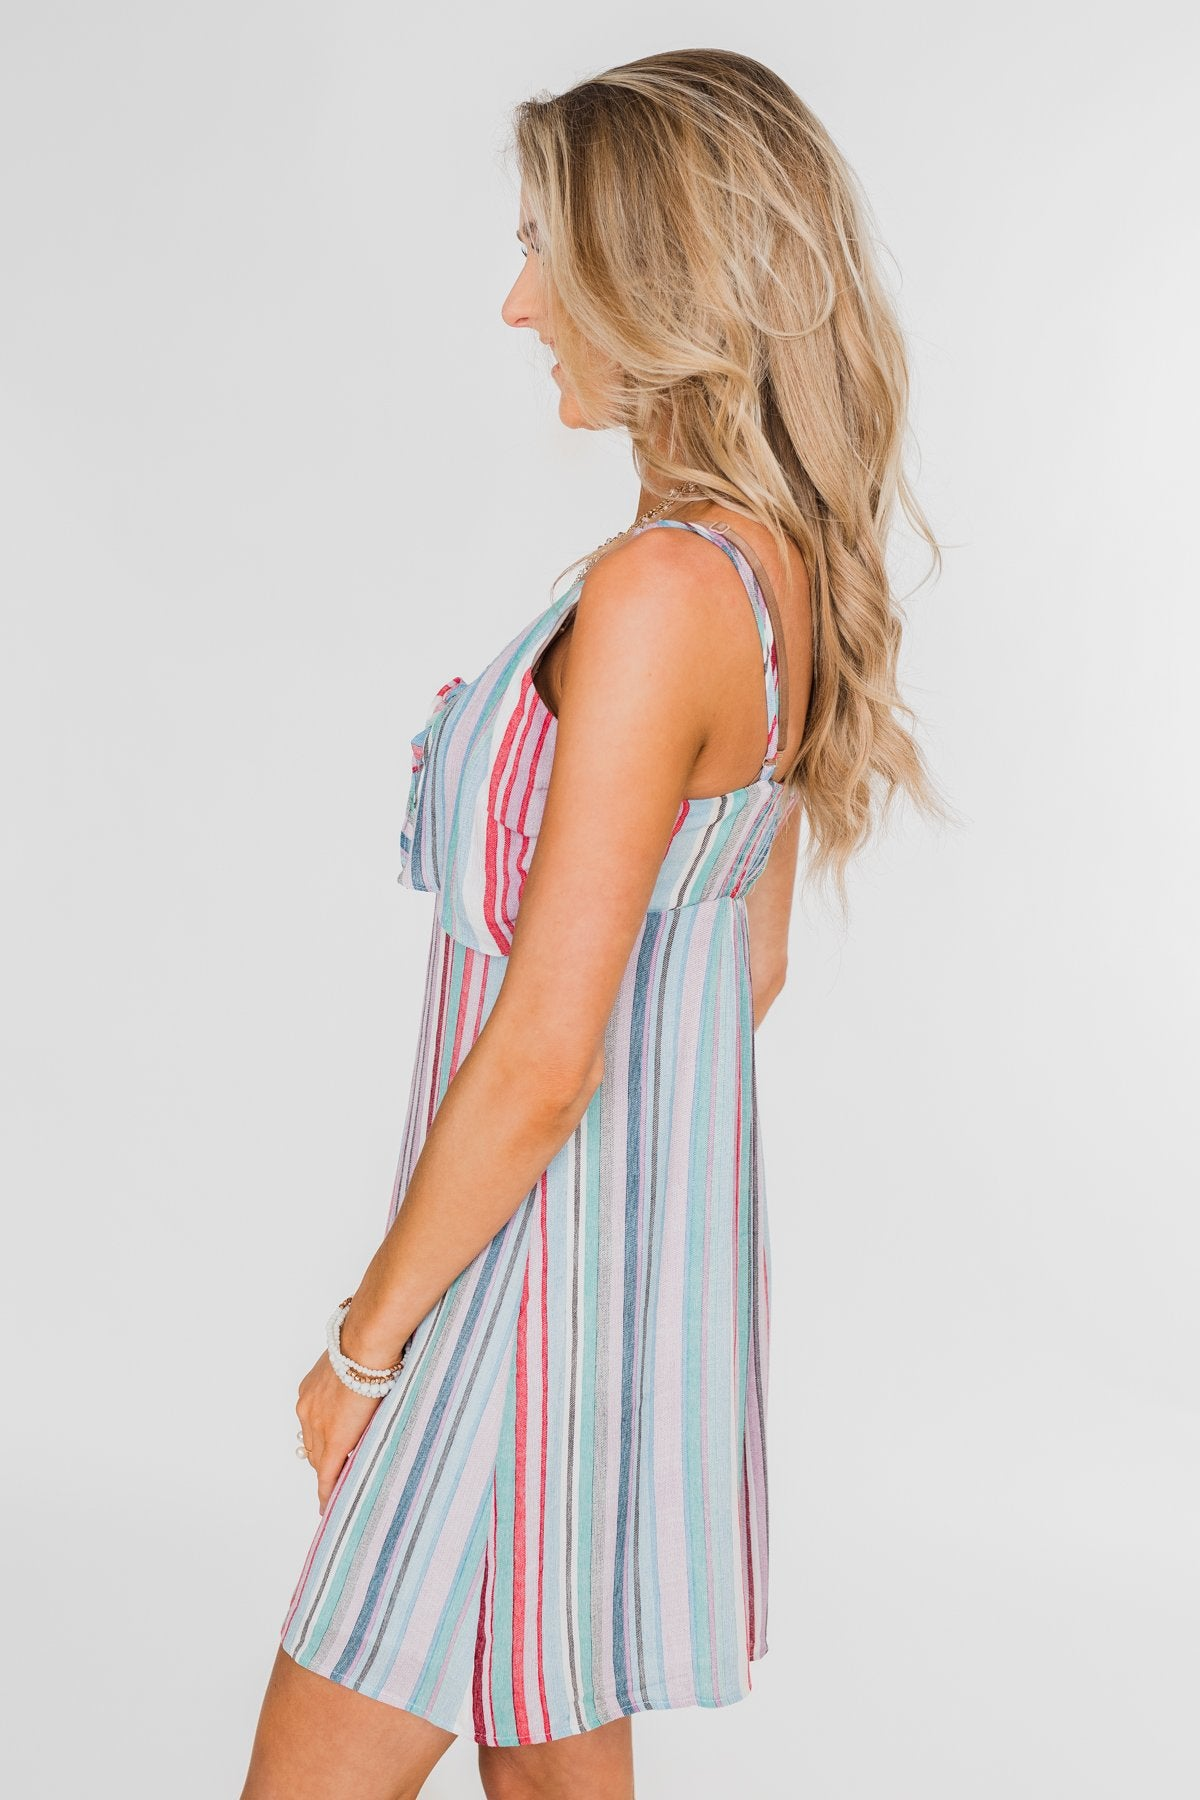 So Sweet Striped Dress- Multi Colored